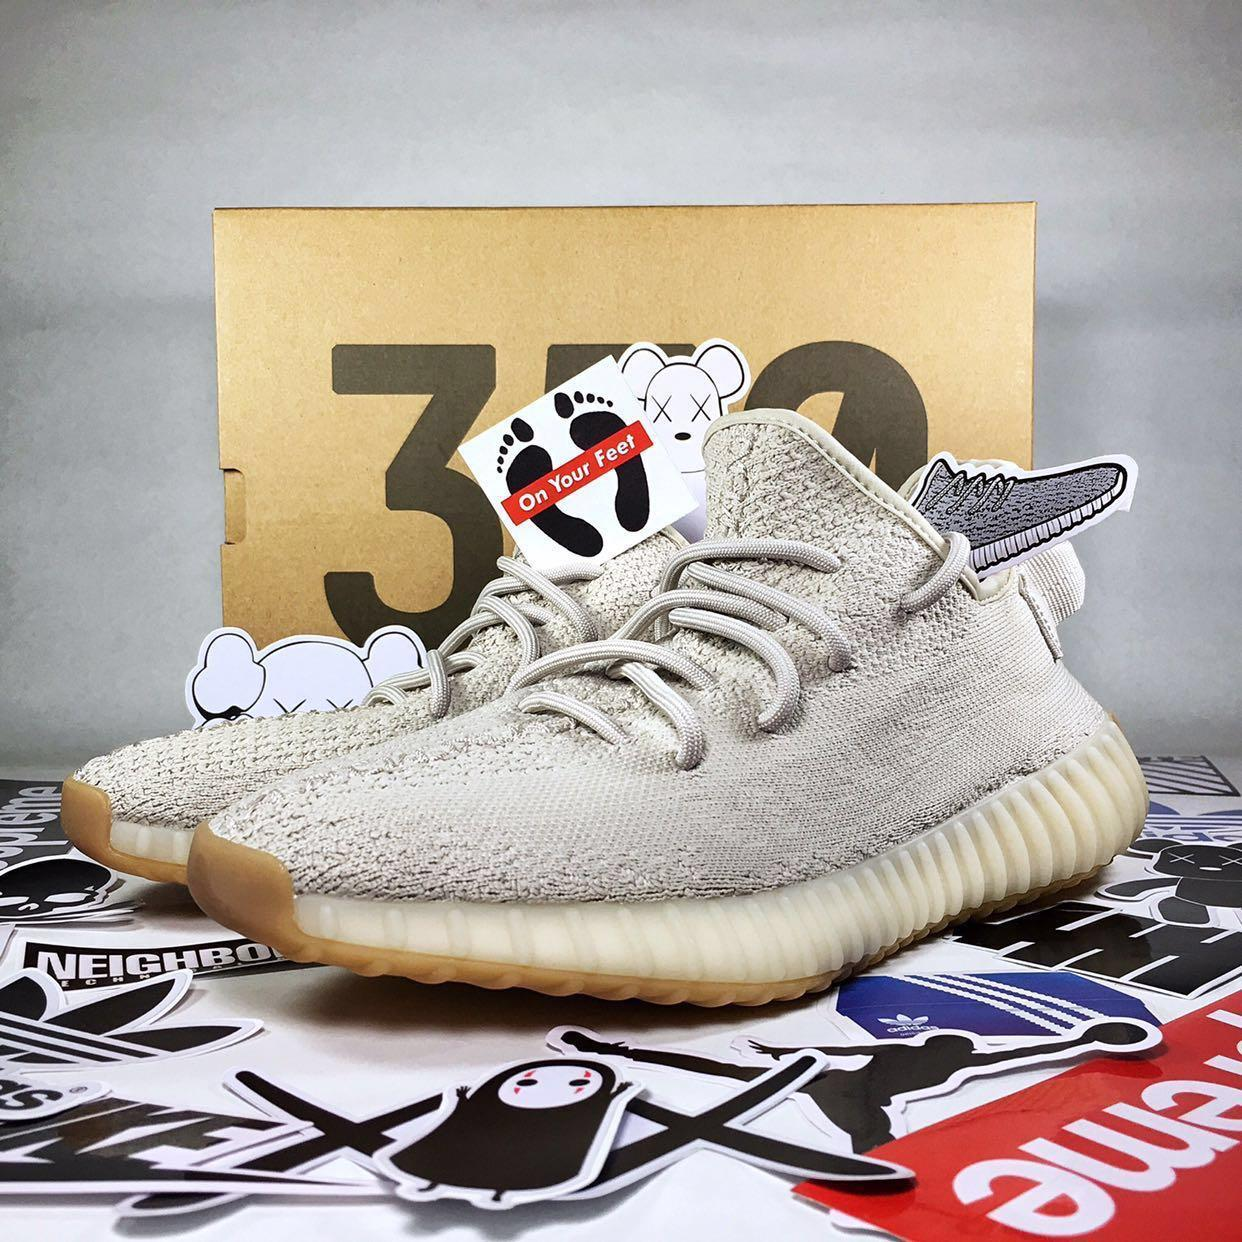 sale retailer 1ad44 80b7a SELLING: Adidas Yeezy Boost 350 V2 Sesame, Men's Fashion ...